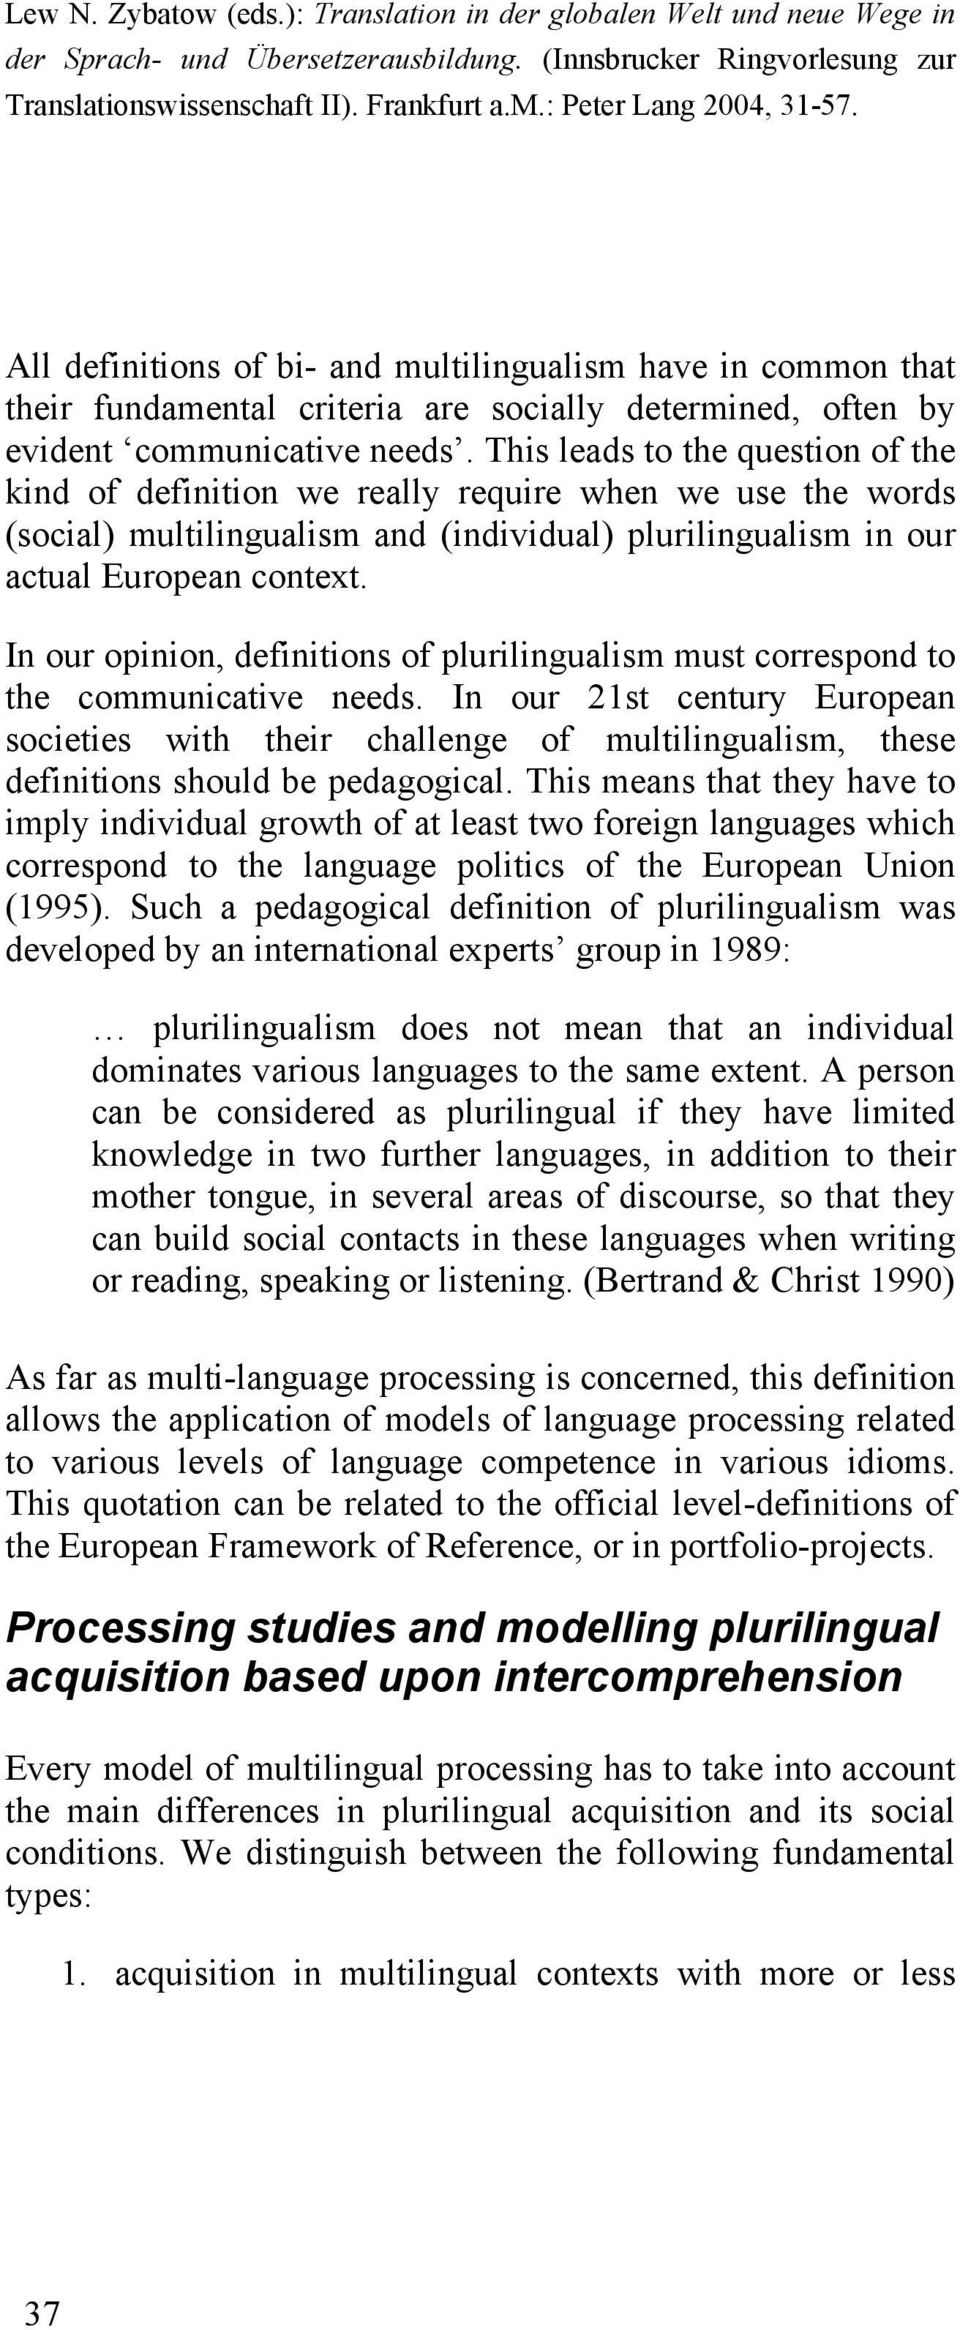 In our opinion, definitions of plurilingualism must correspond to the communicative needs.